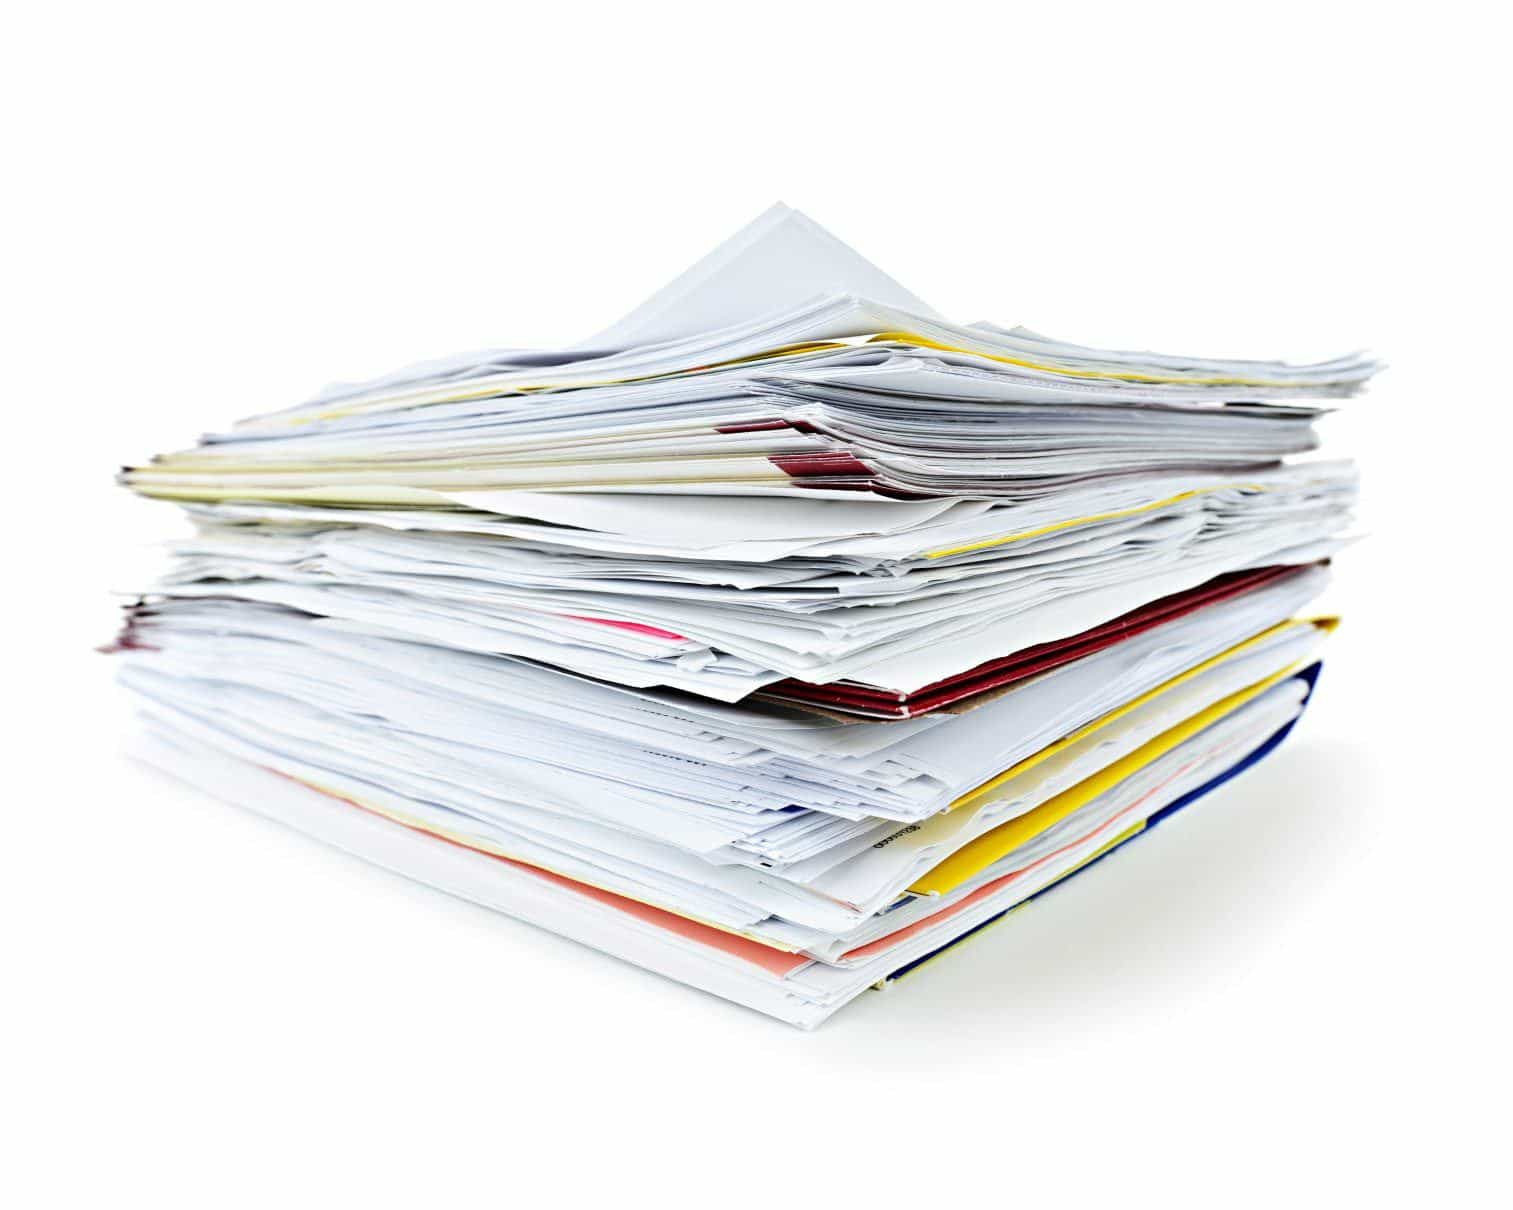 the best tips on how to organize important papers documents to